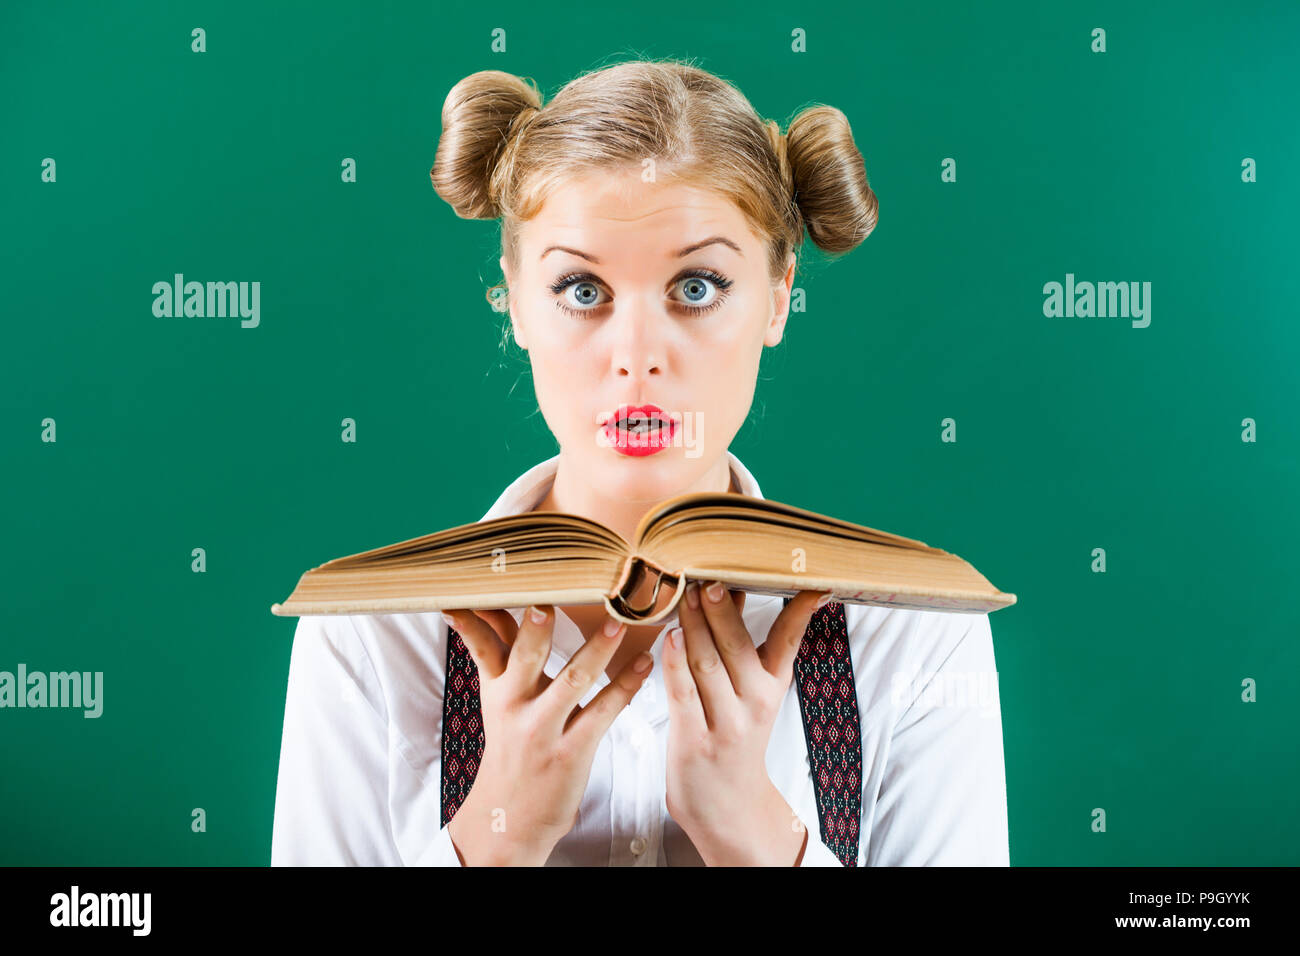 Wisdom comes from book - Stock Image